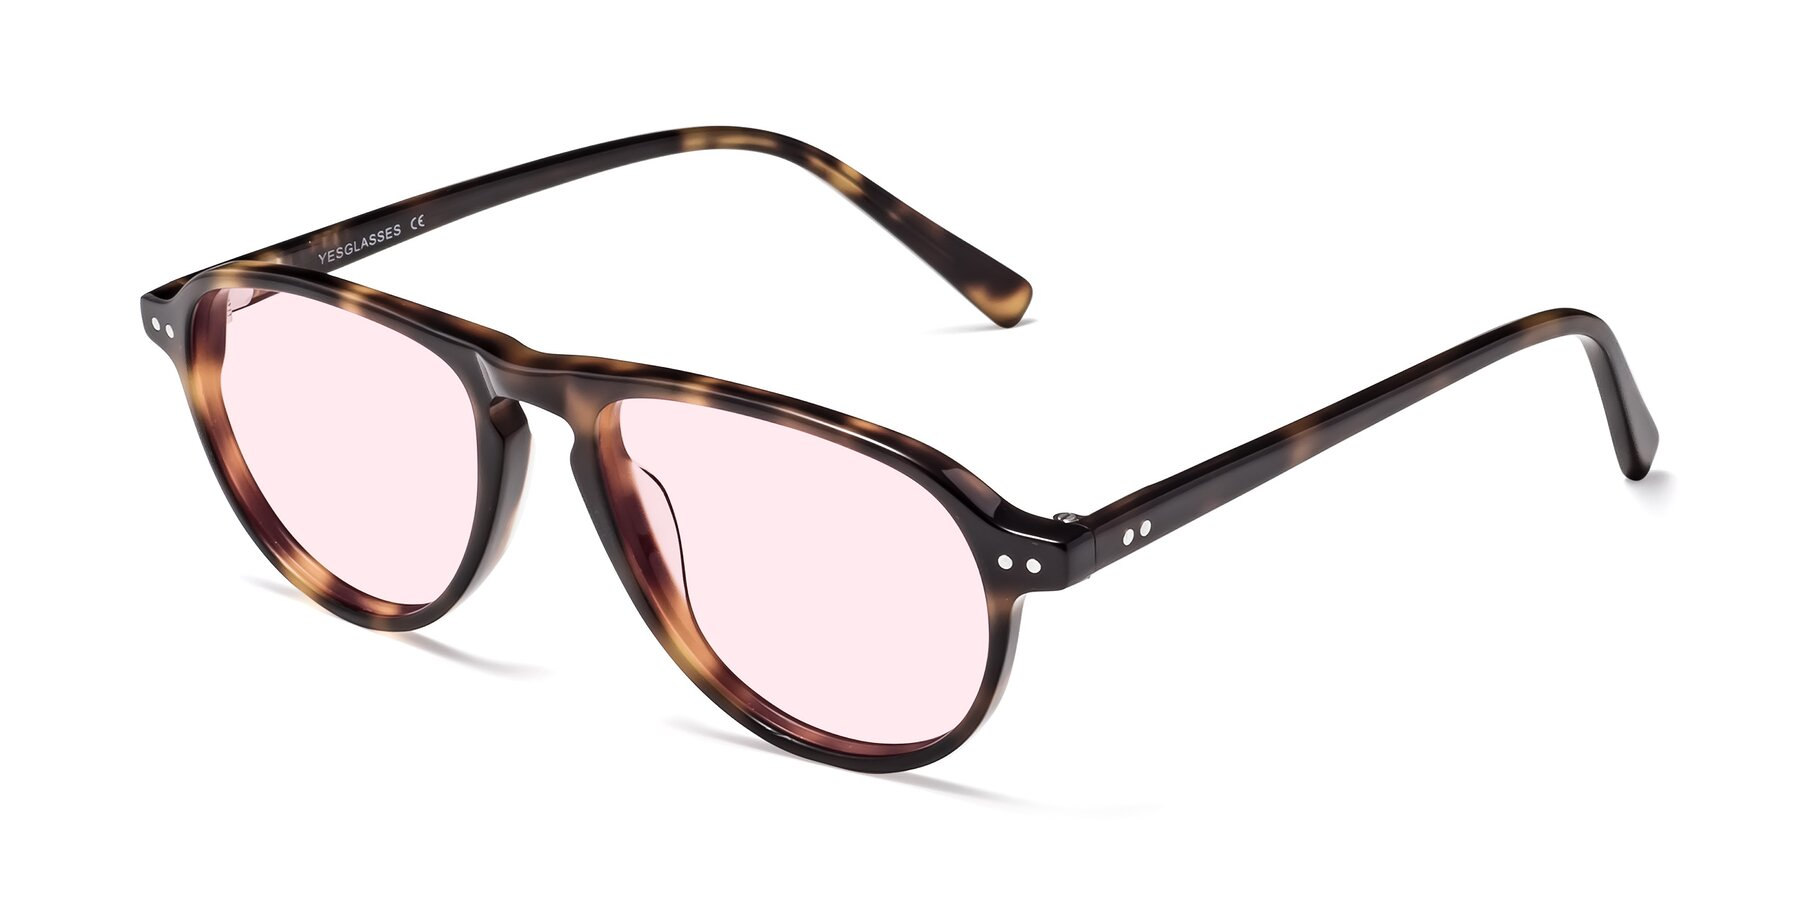 Angle of 17544 in Tortoise with Light Pink Tinted Lenses